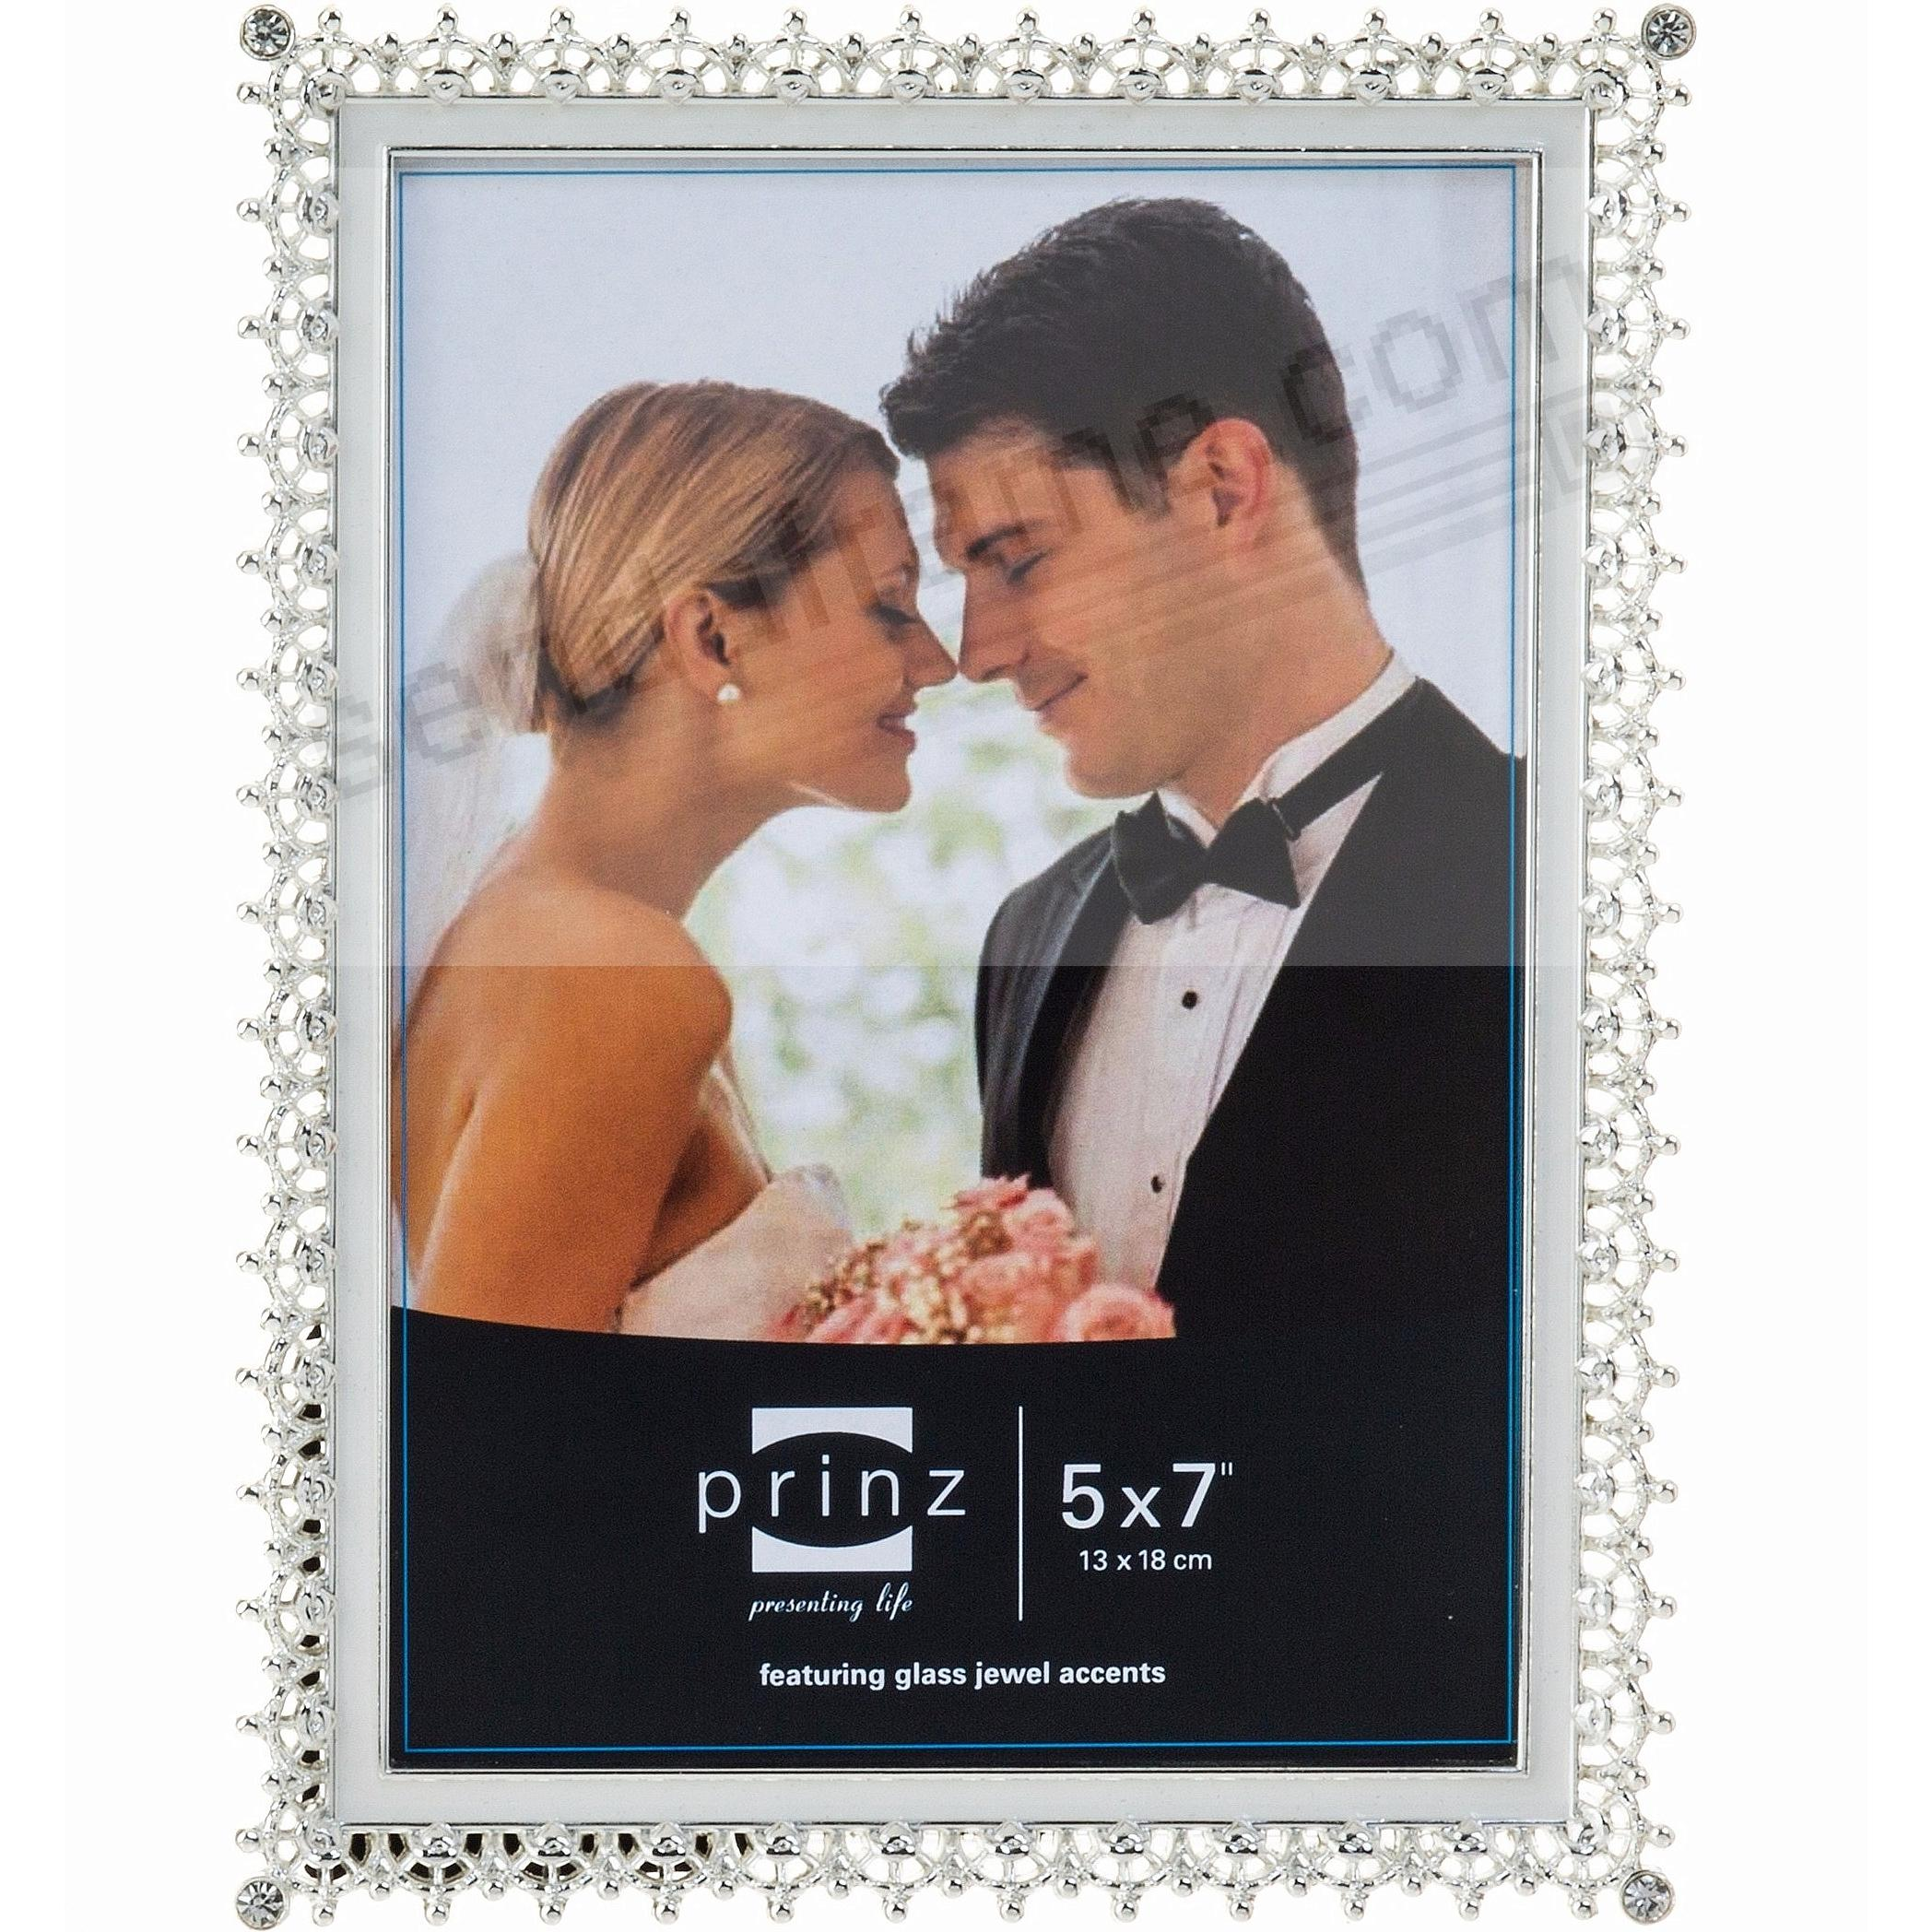 Picture frames photo albums personalized and engraved digital elegance silver crystal and enamel 5x7 frame by prinzreg jeuxipadfo Gallery